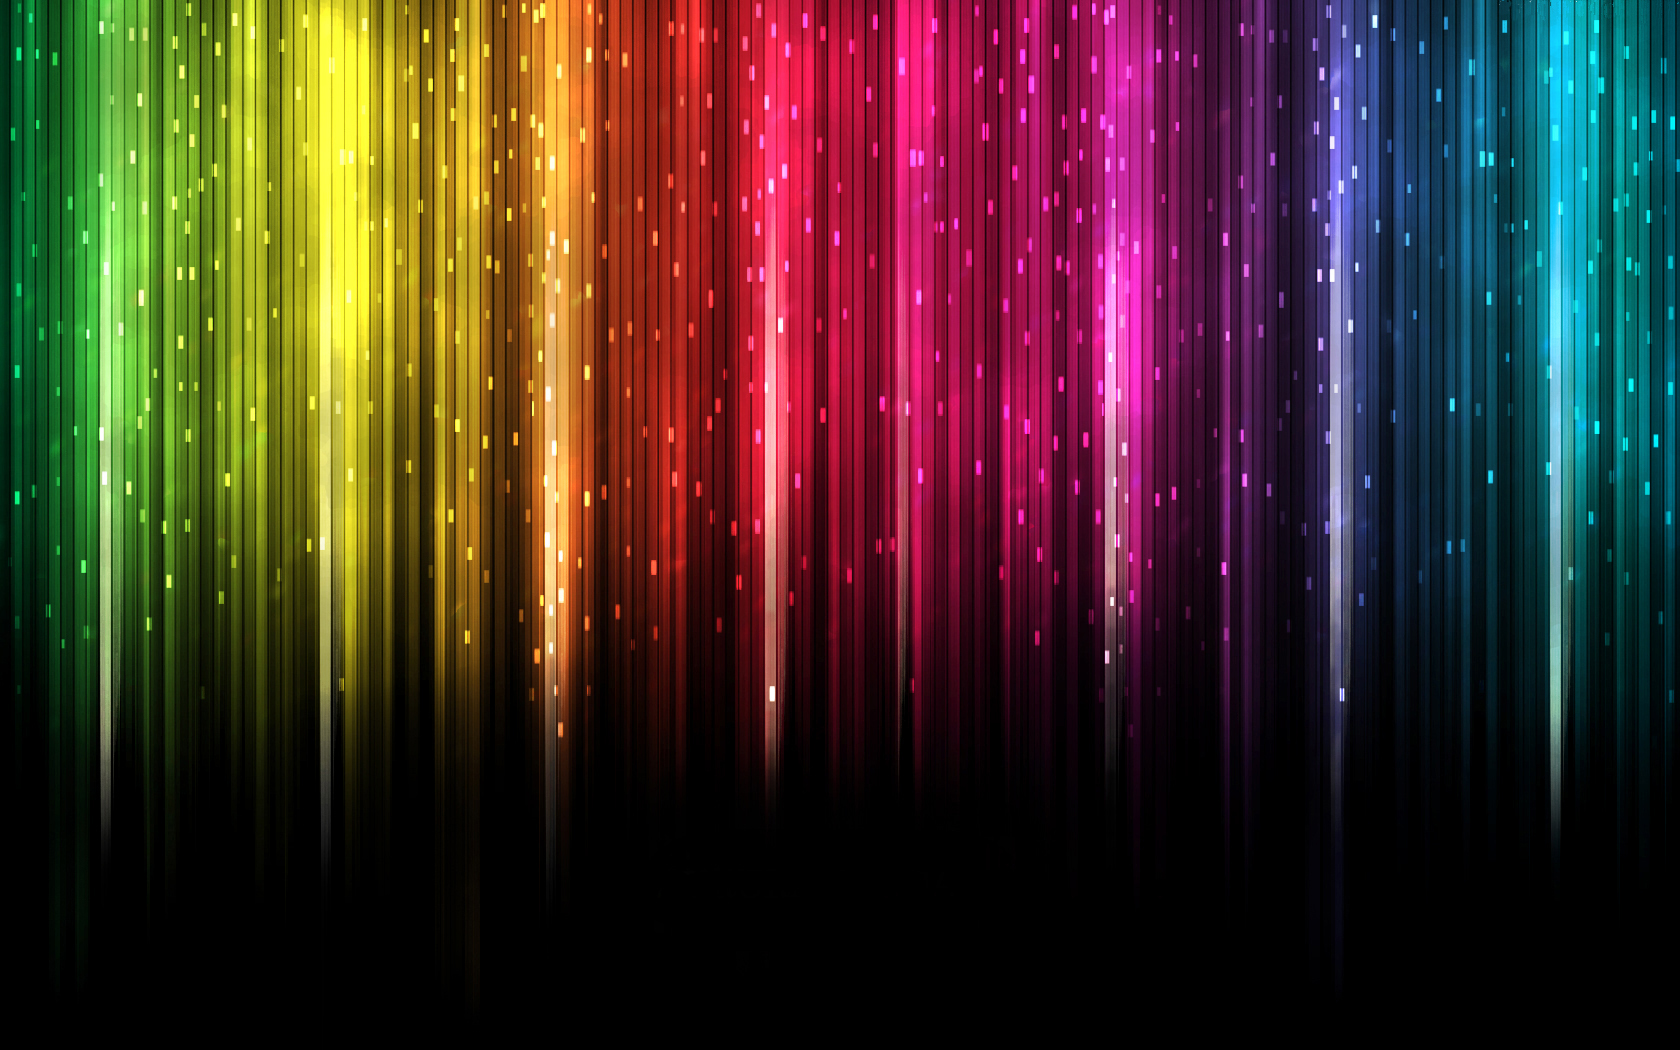 colorful fever images pretty colors HD wallpaper and background ...